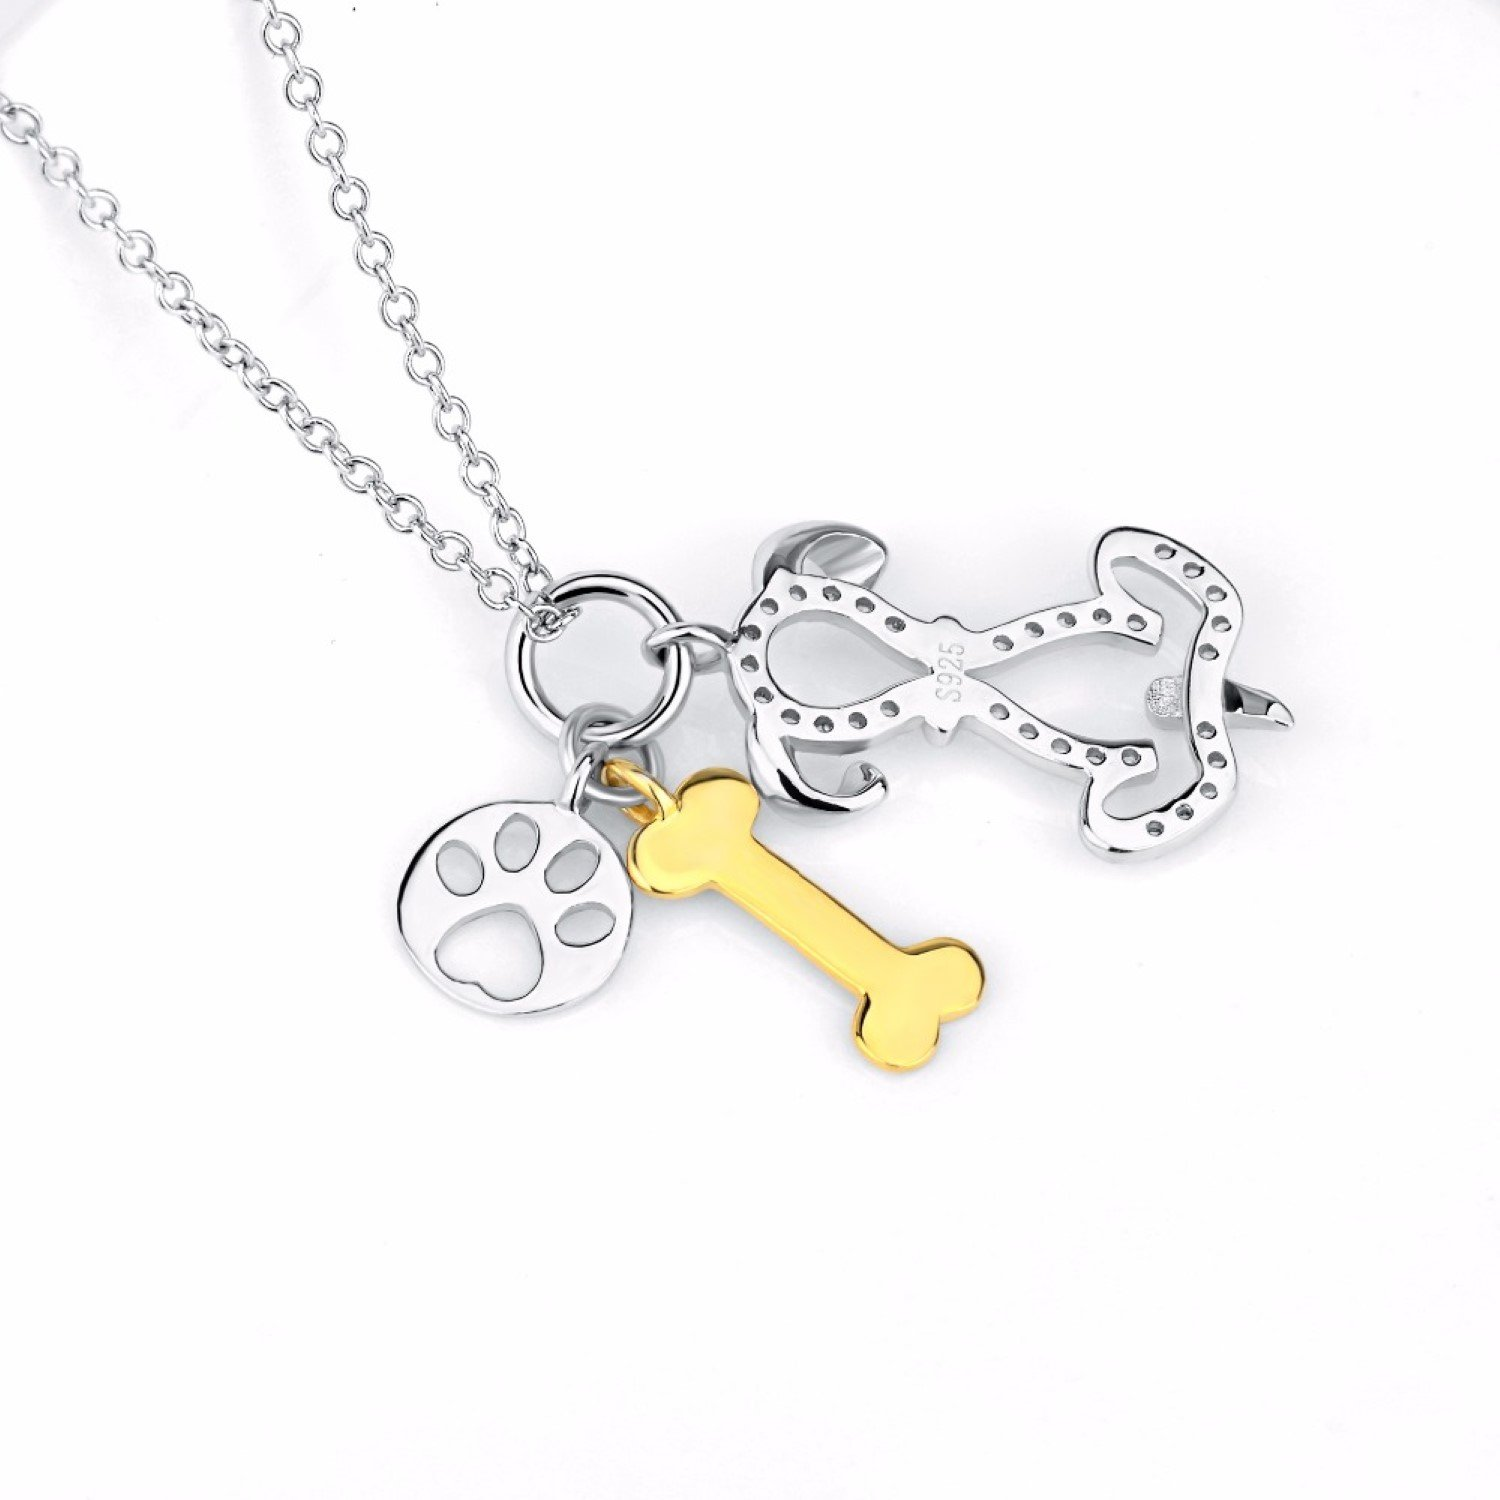 CS-DB Animal Crystal Dogs Paw and Bone Top Stylish Silver Necklaces Pendants